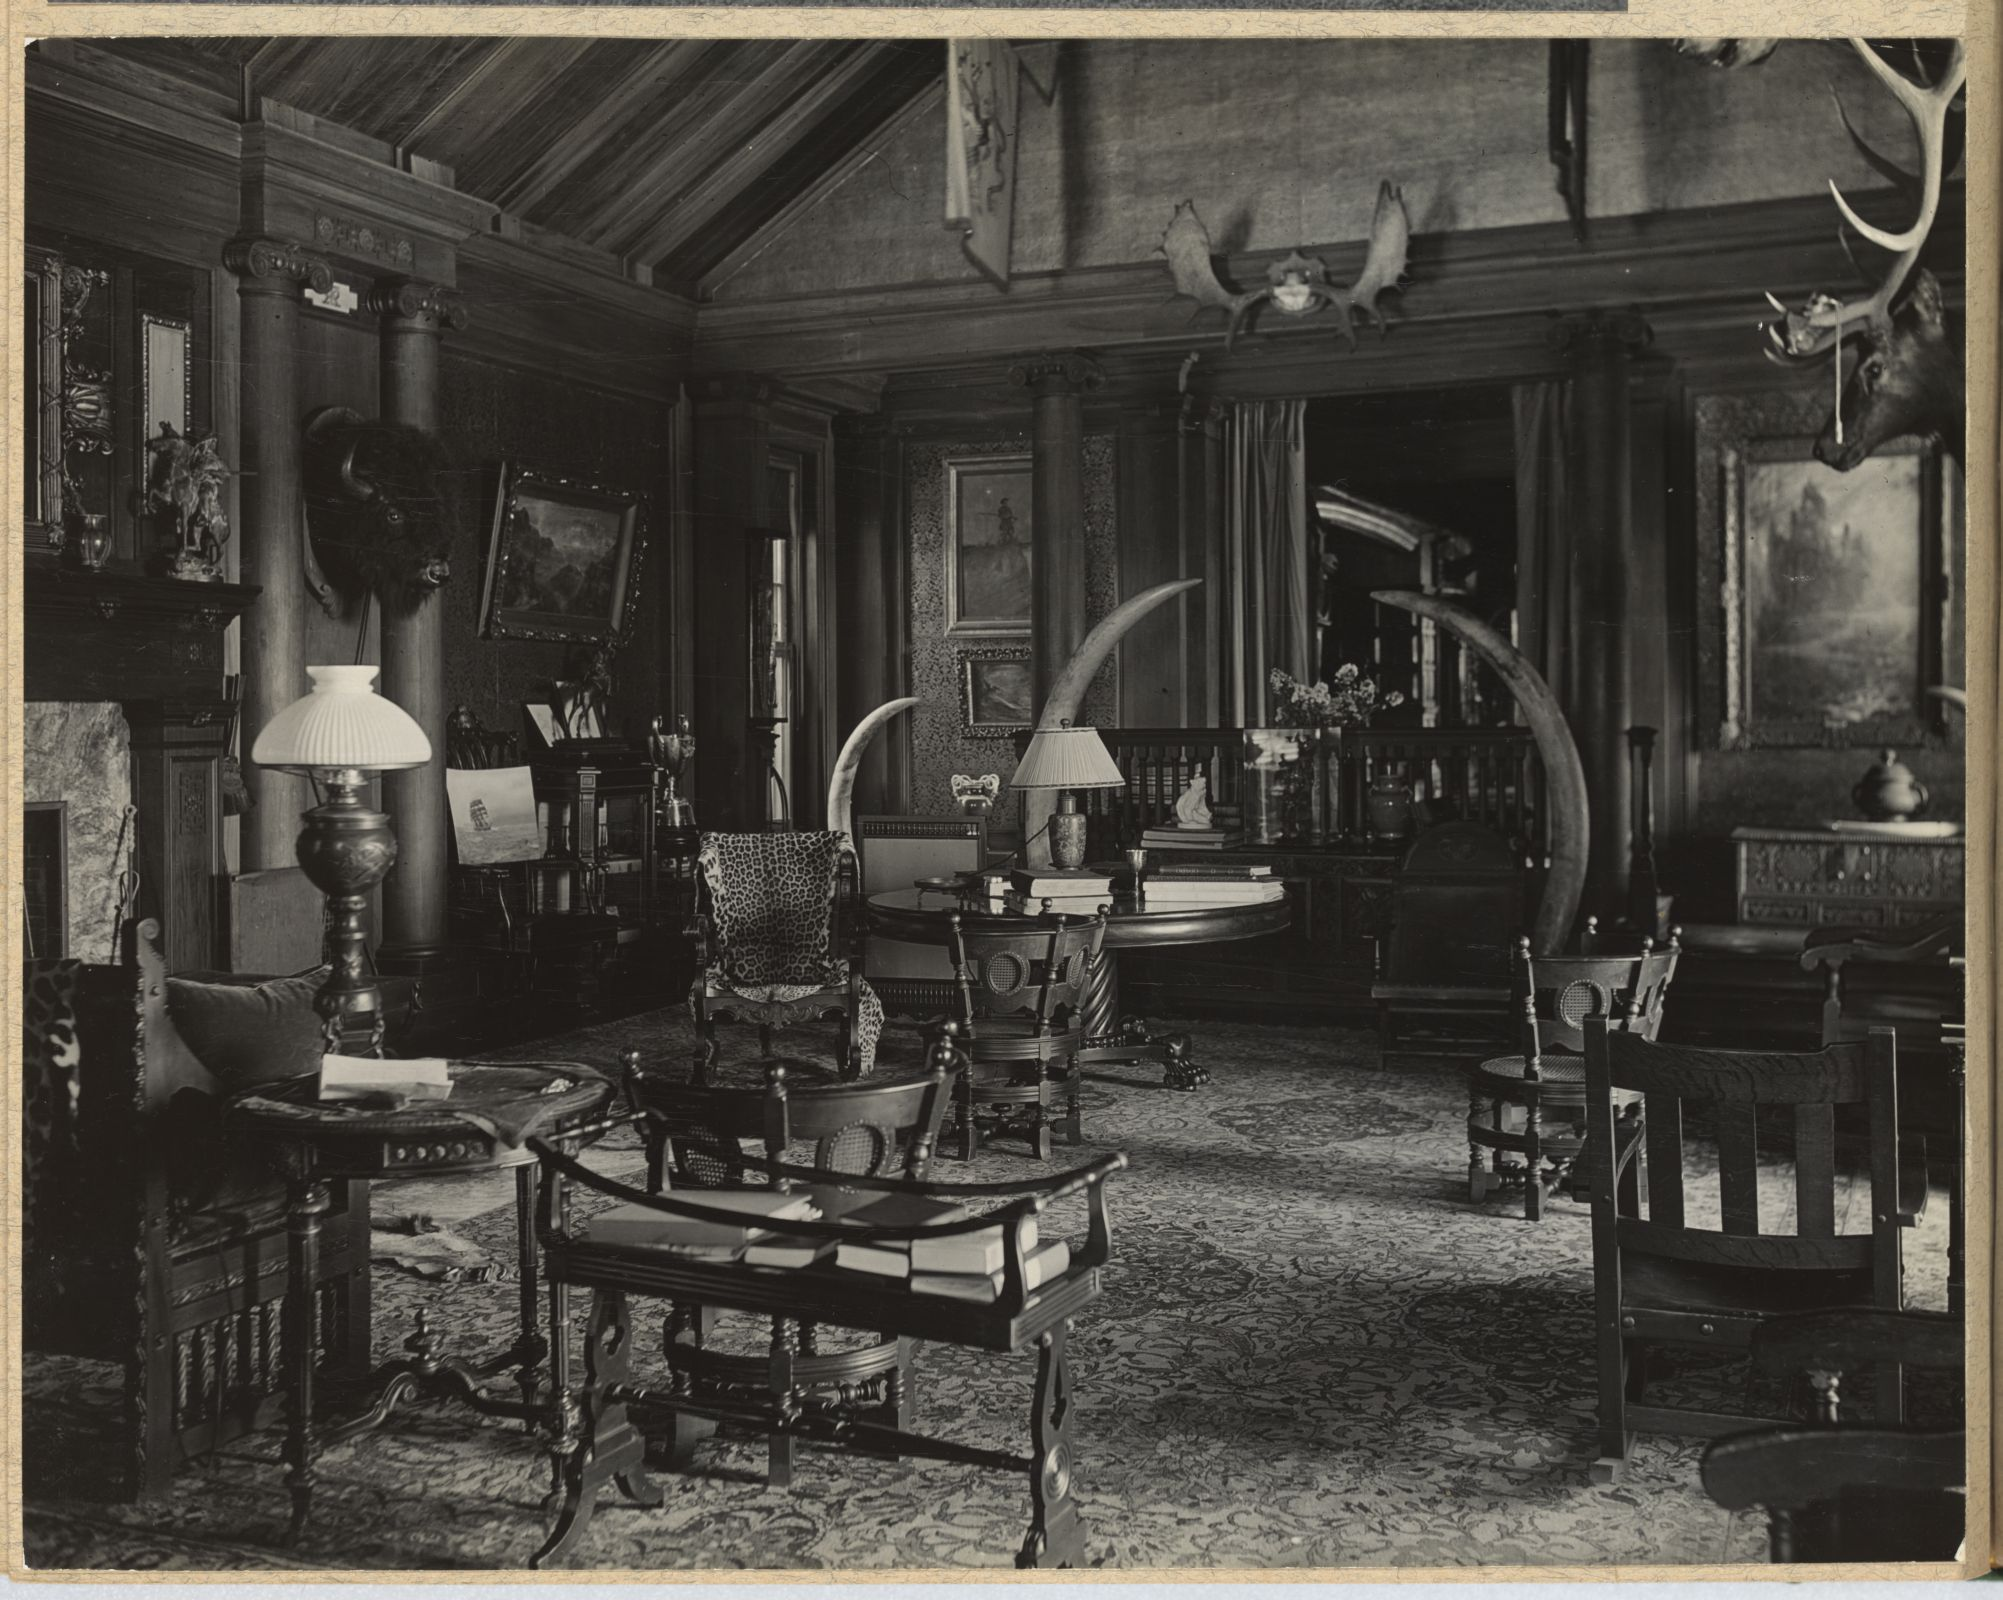 The North Room at Sagamore Hill circa 1912. From the Roosevelt Family albums, Library of Congress Prints and Photographs division.